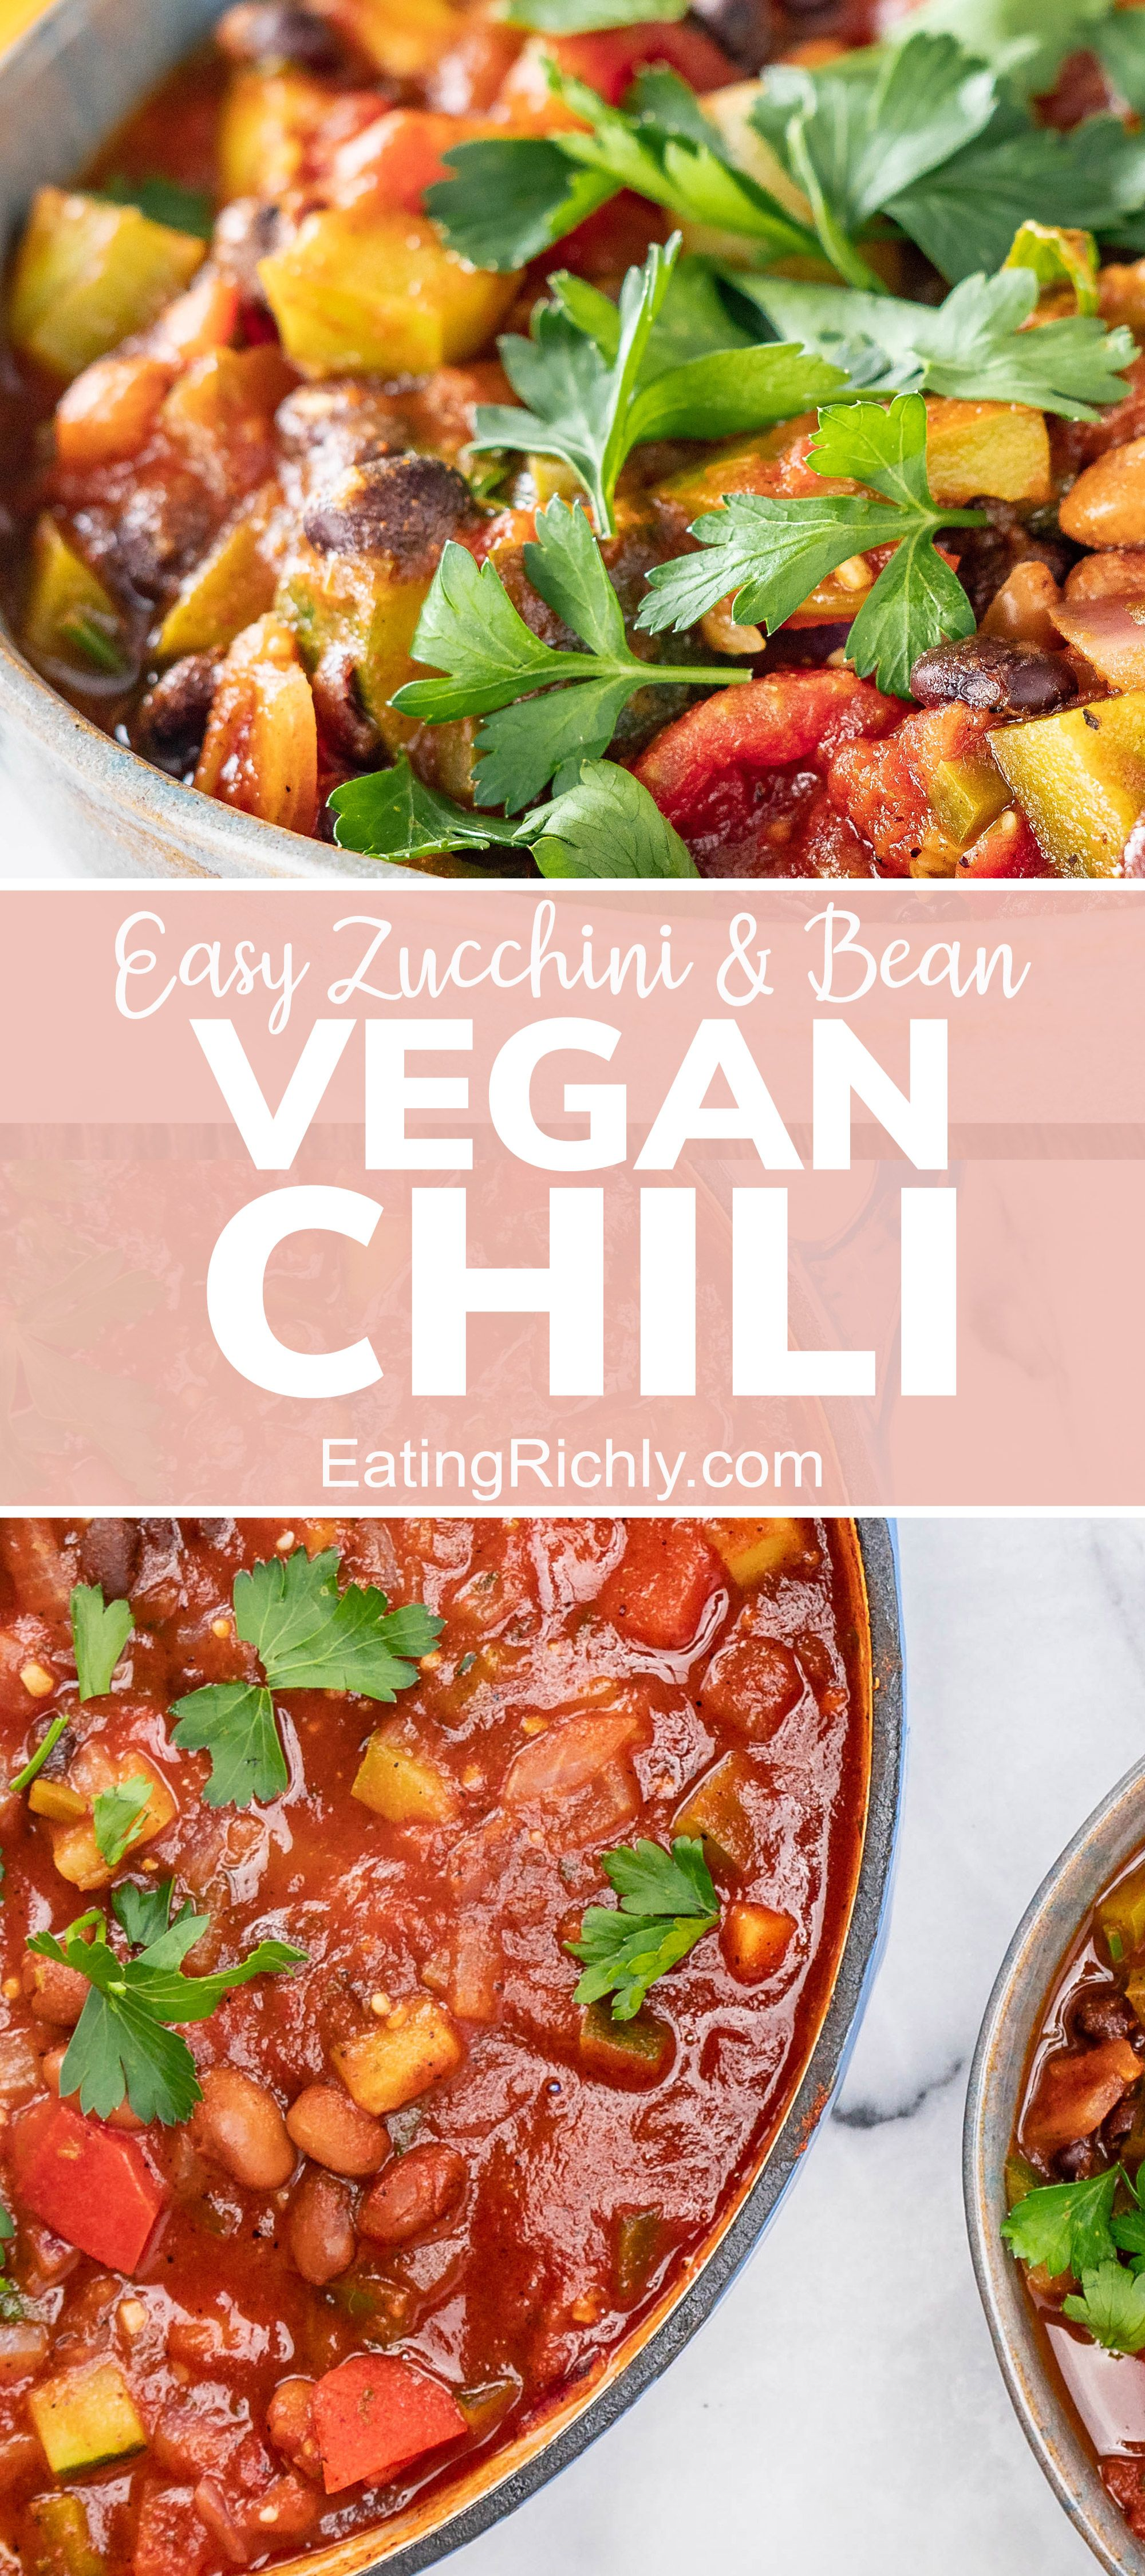 Vegan Chili Recipe With Zucchini And Beans In 2021 Vegan Chili Recipe Healthy Soup Recipes Vegan Chili